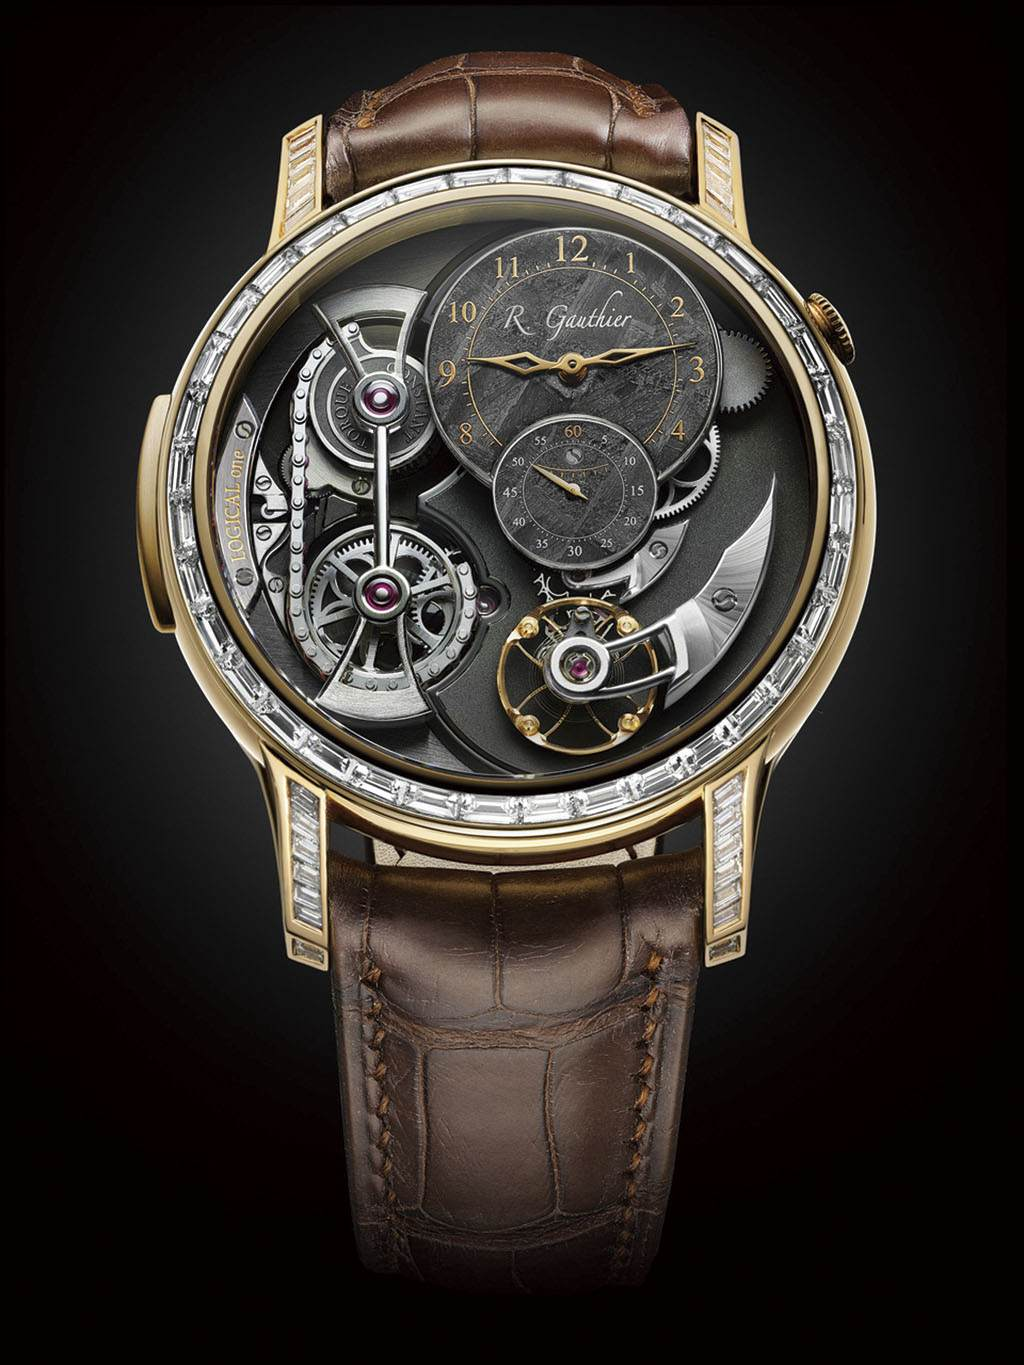 Romain Gauthier Logical One Bronze Baguette